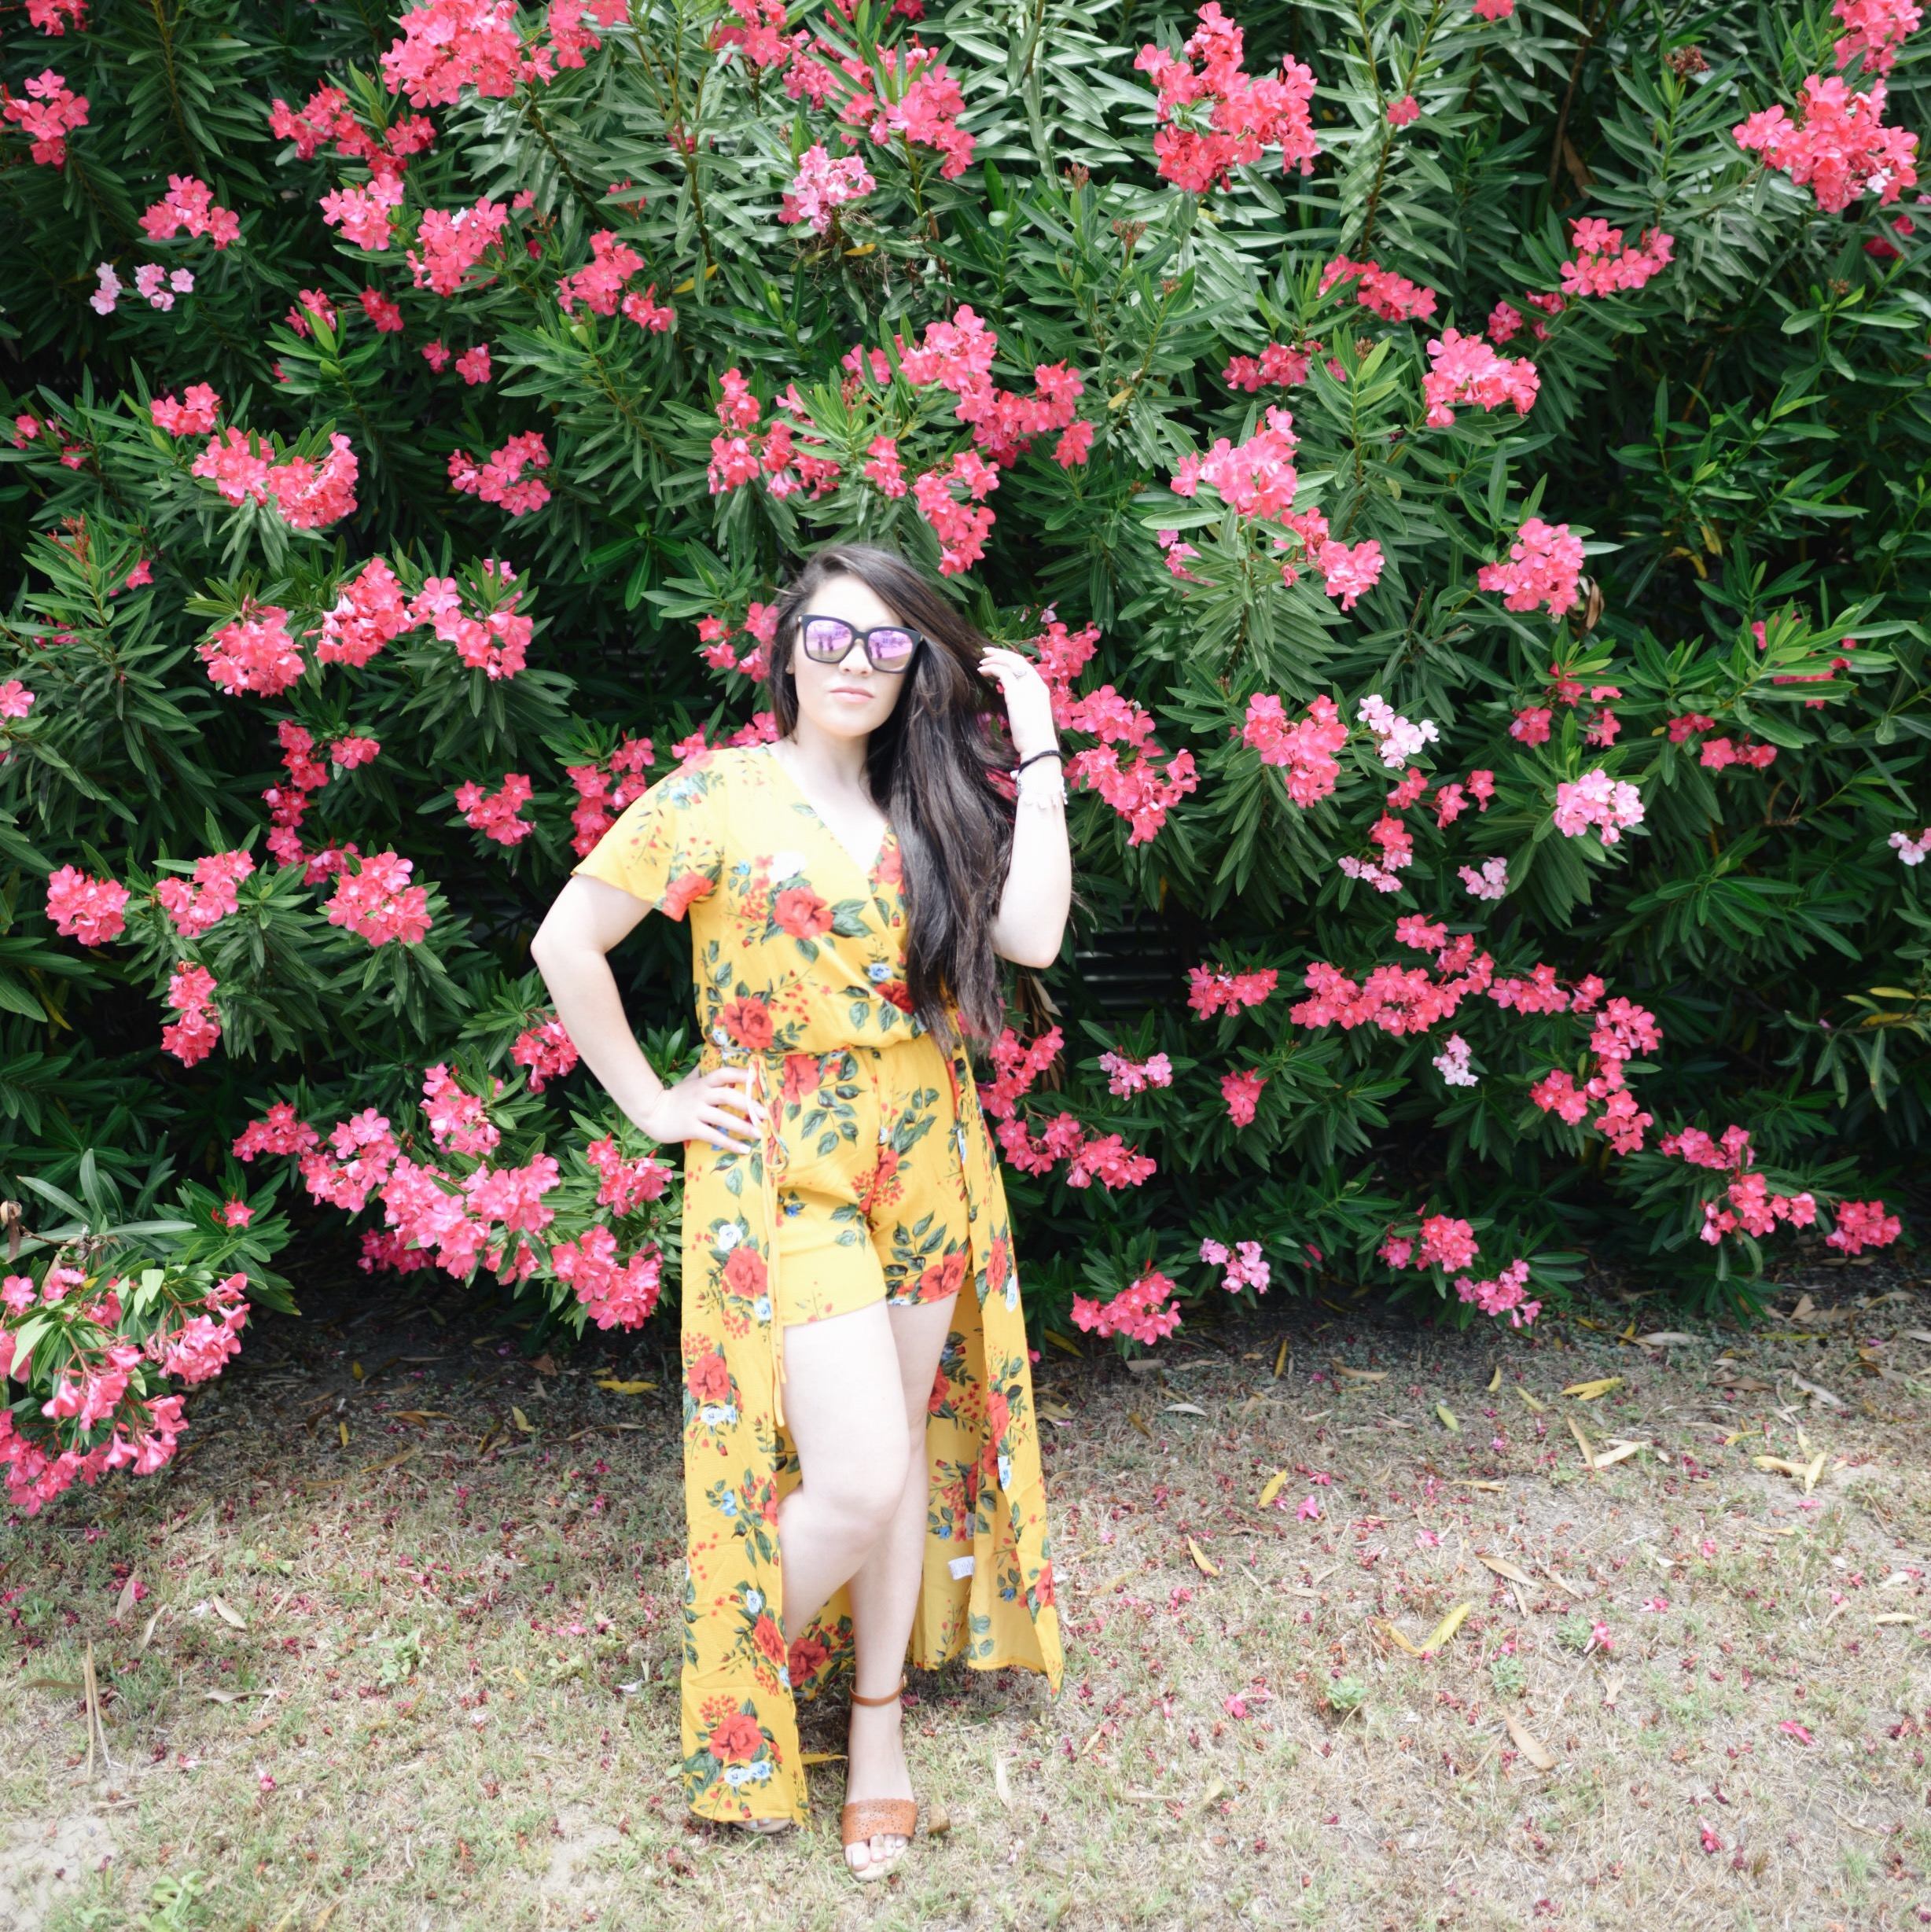 #romper, Skirt, Summer fashion, trend linkup